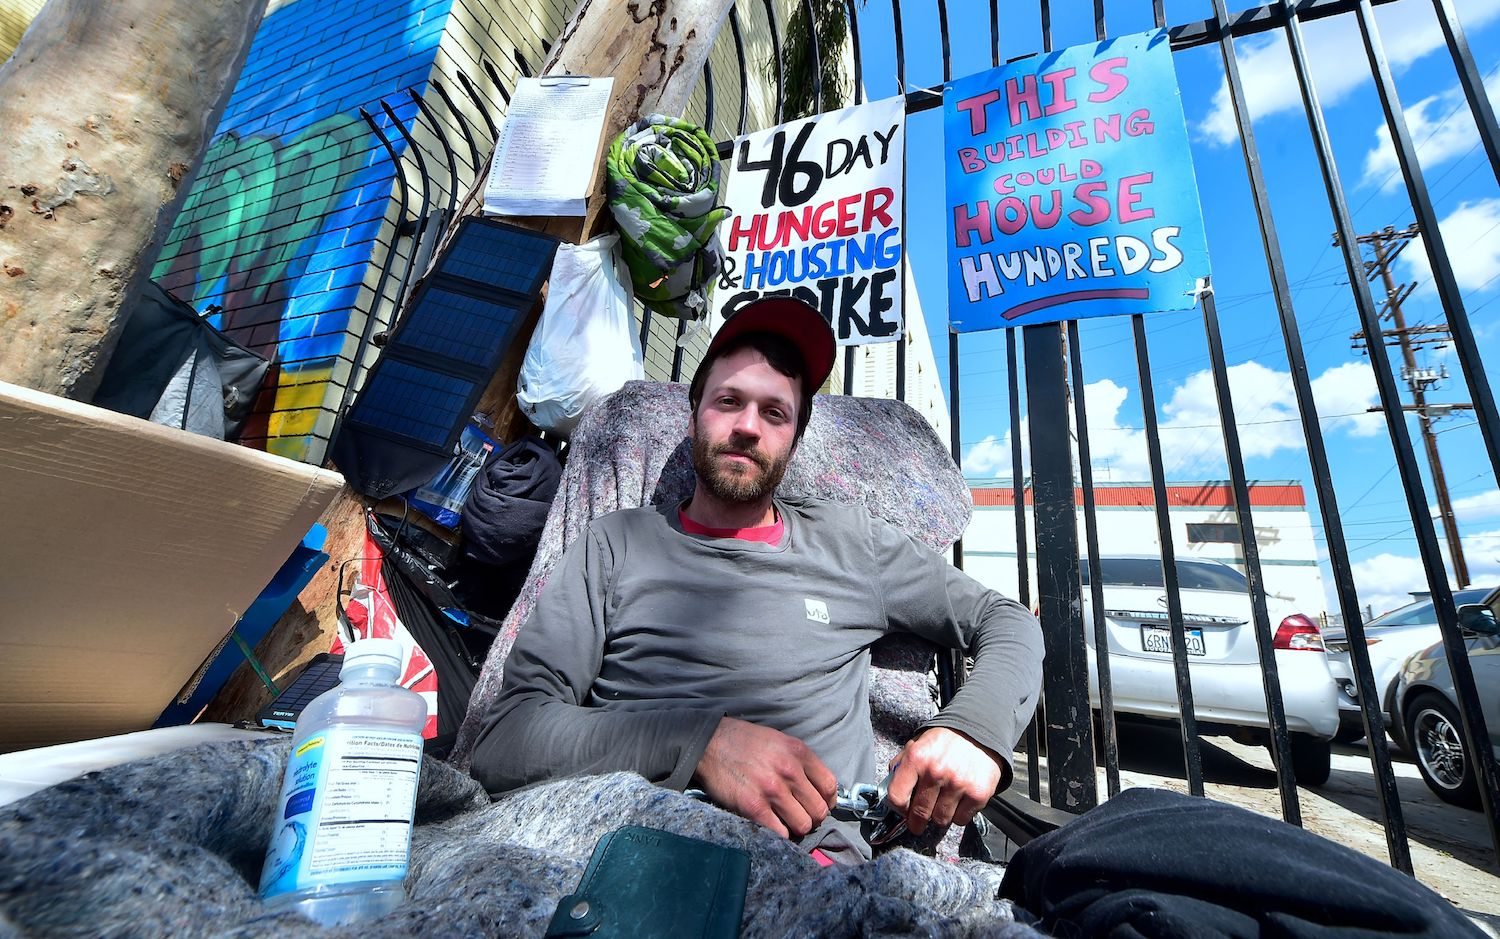 Kaleb Havens, a Catholic worker, continues his Lent hunger strike in the skid row section of Los Angeles on Feb. 22. (Frederic J. Brown/AFP/Getty Images)